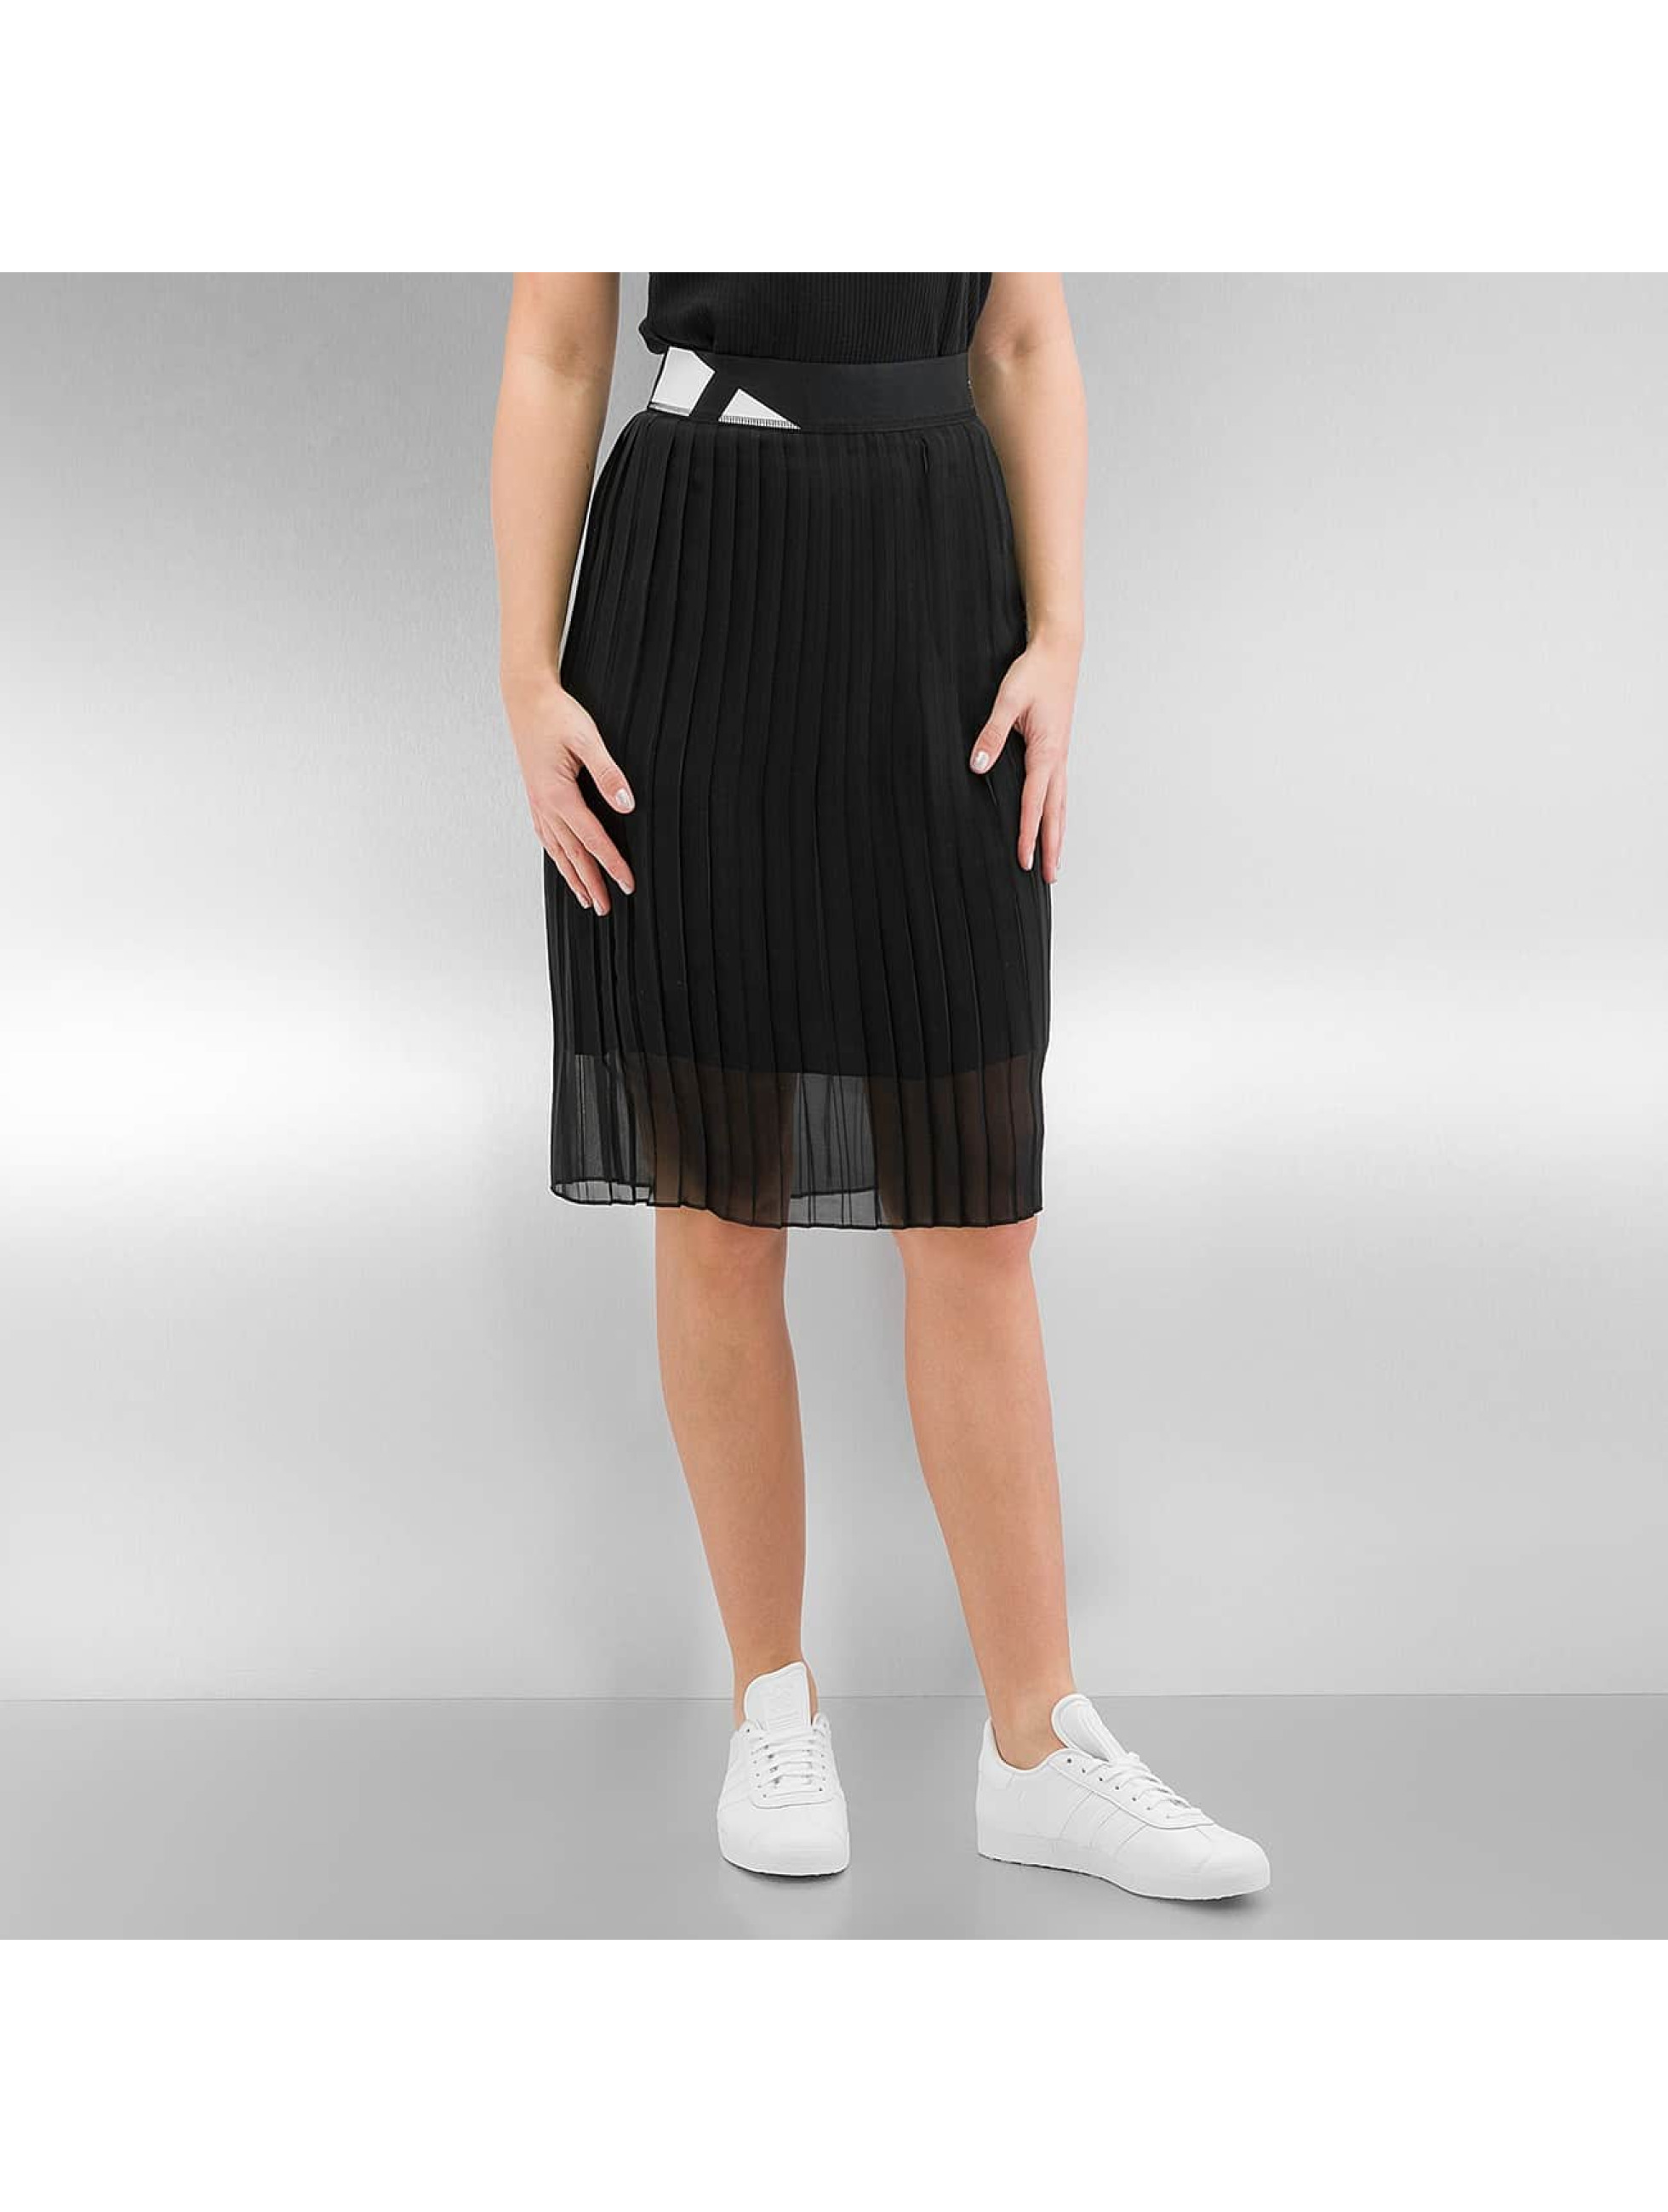 adidas Frauen Rock Pleated in schwarz